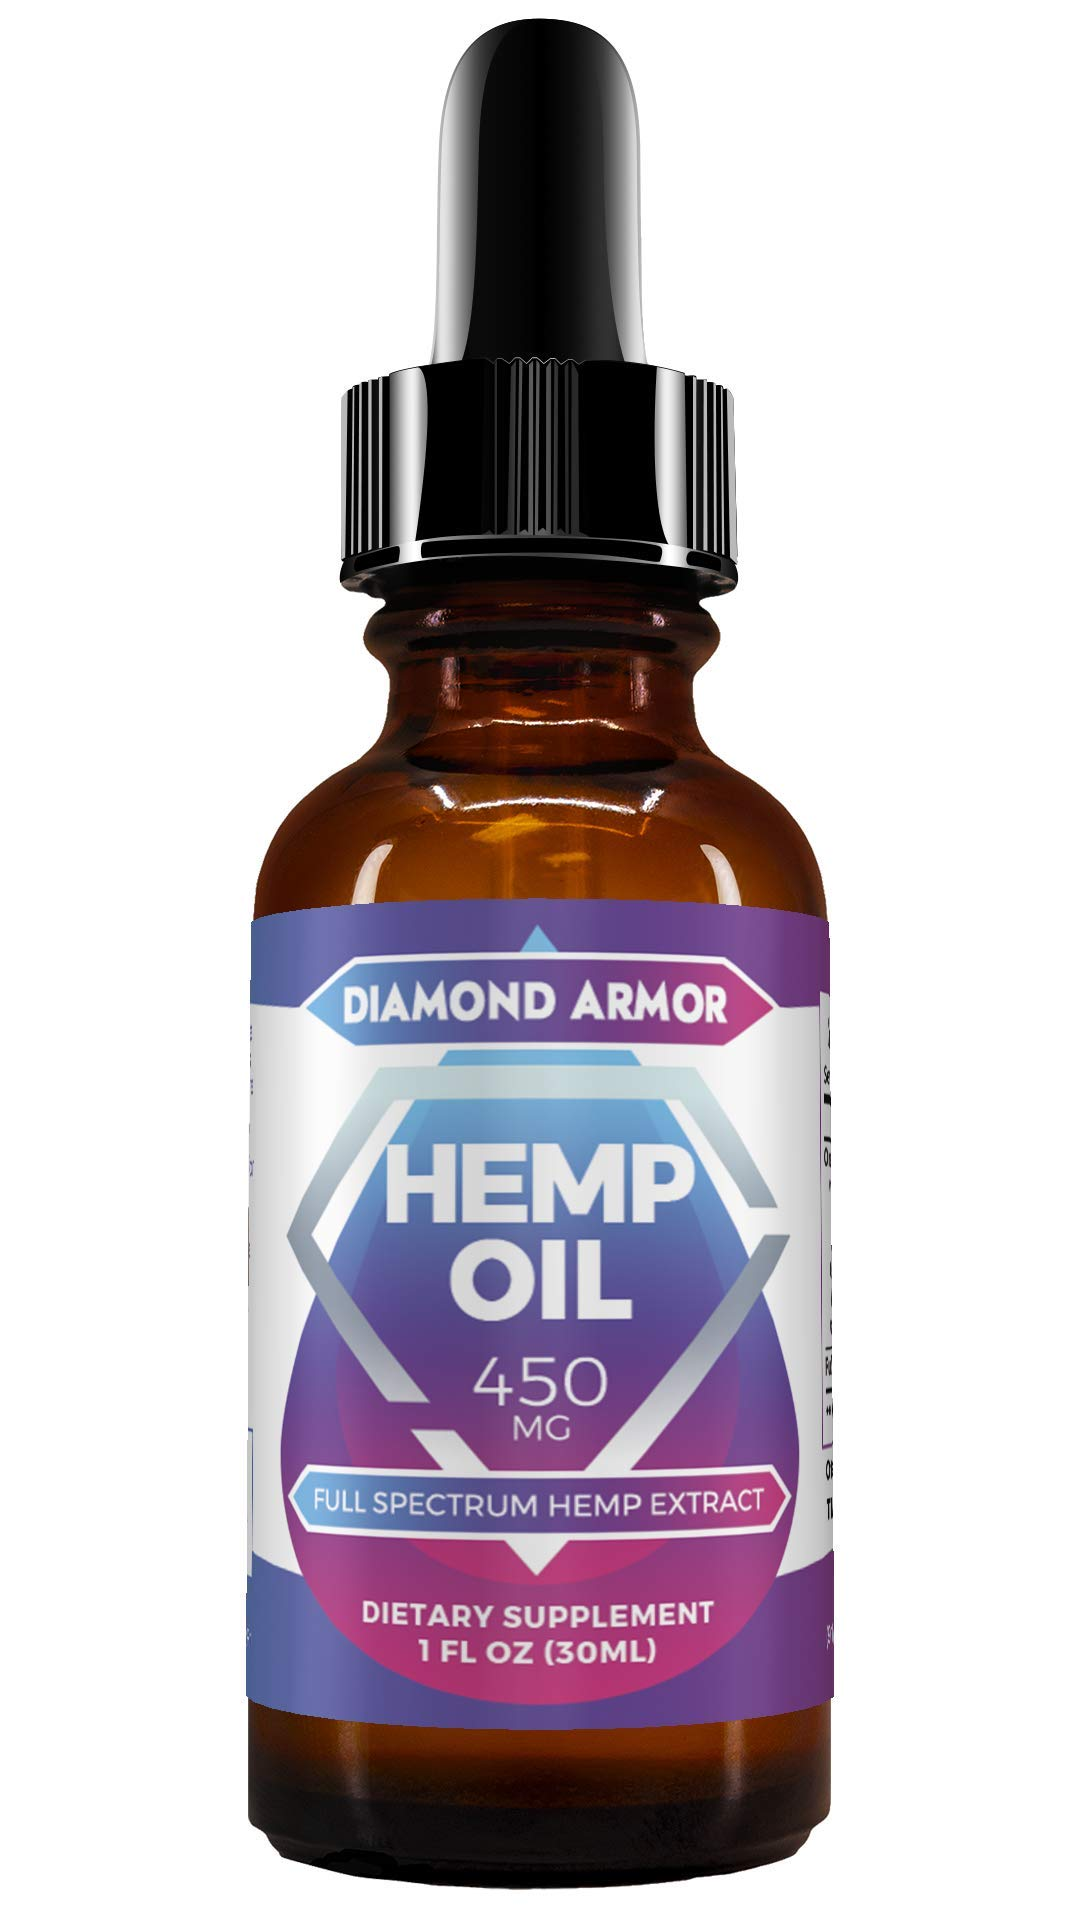 Full Spectrum Hemp Seed Oil Drops - 450mg | Promotes Anxiety Relief, Reduces Stress & Chronic Pain, Anti-Inflammatory & Sleep Aid with Omega 3, 6 & 9 Oils | Zero THC CBD Cannabidiol - Mint Flavor by Diamond Armor